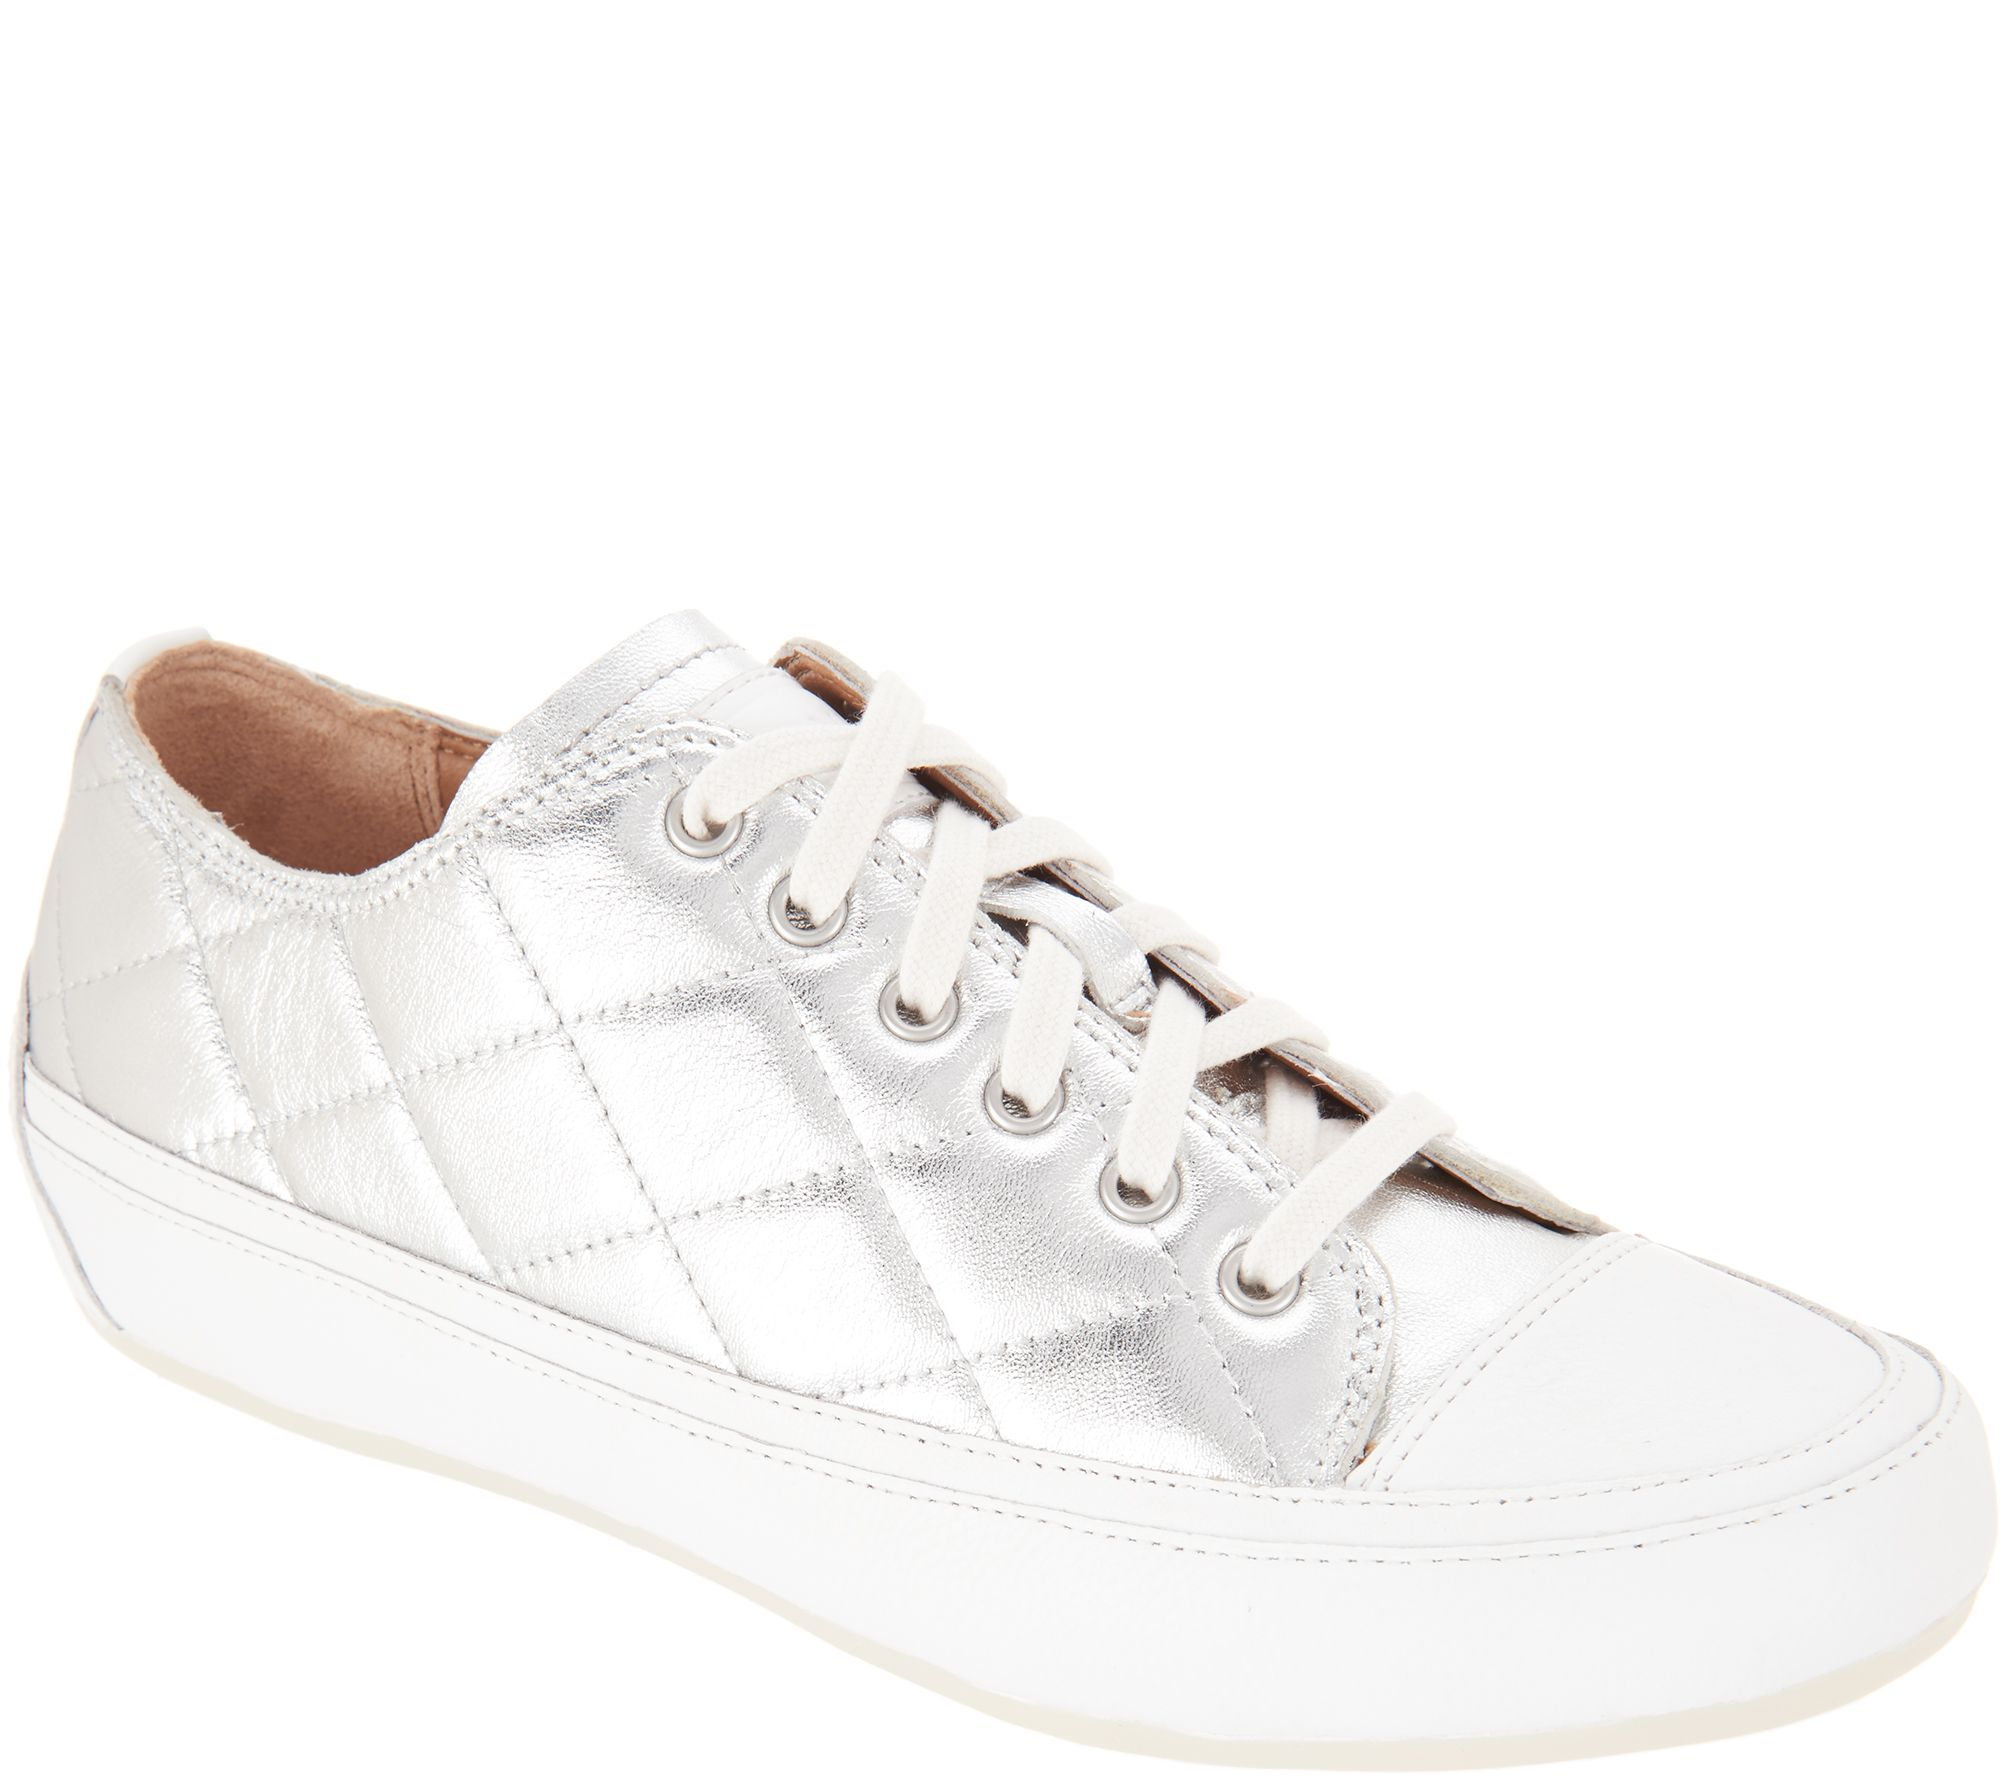 822b42ef30e Vionic Orthotic Quilted Lace-up Sneakers - Edie - Page 1 — QVC.com